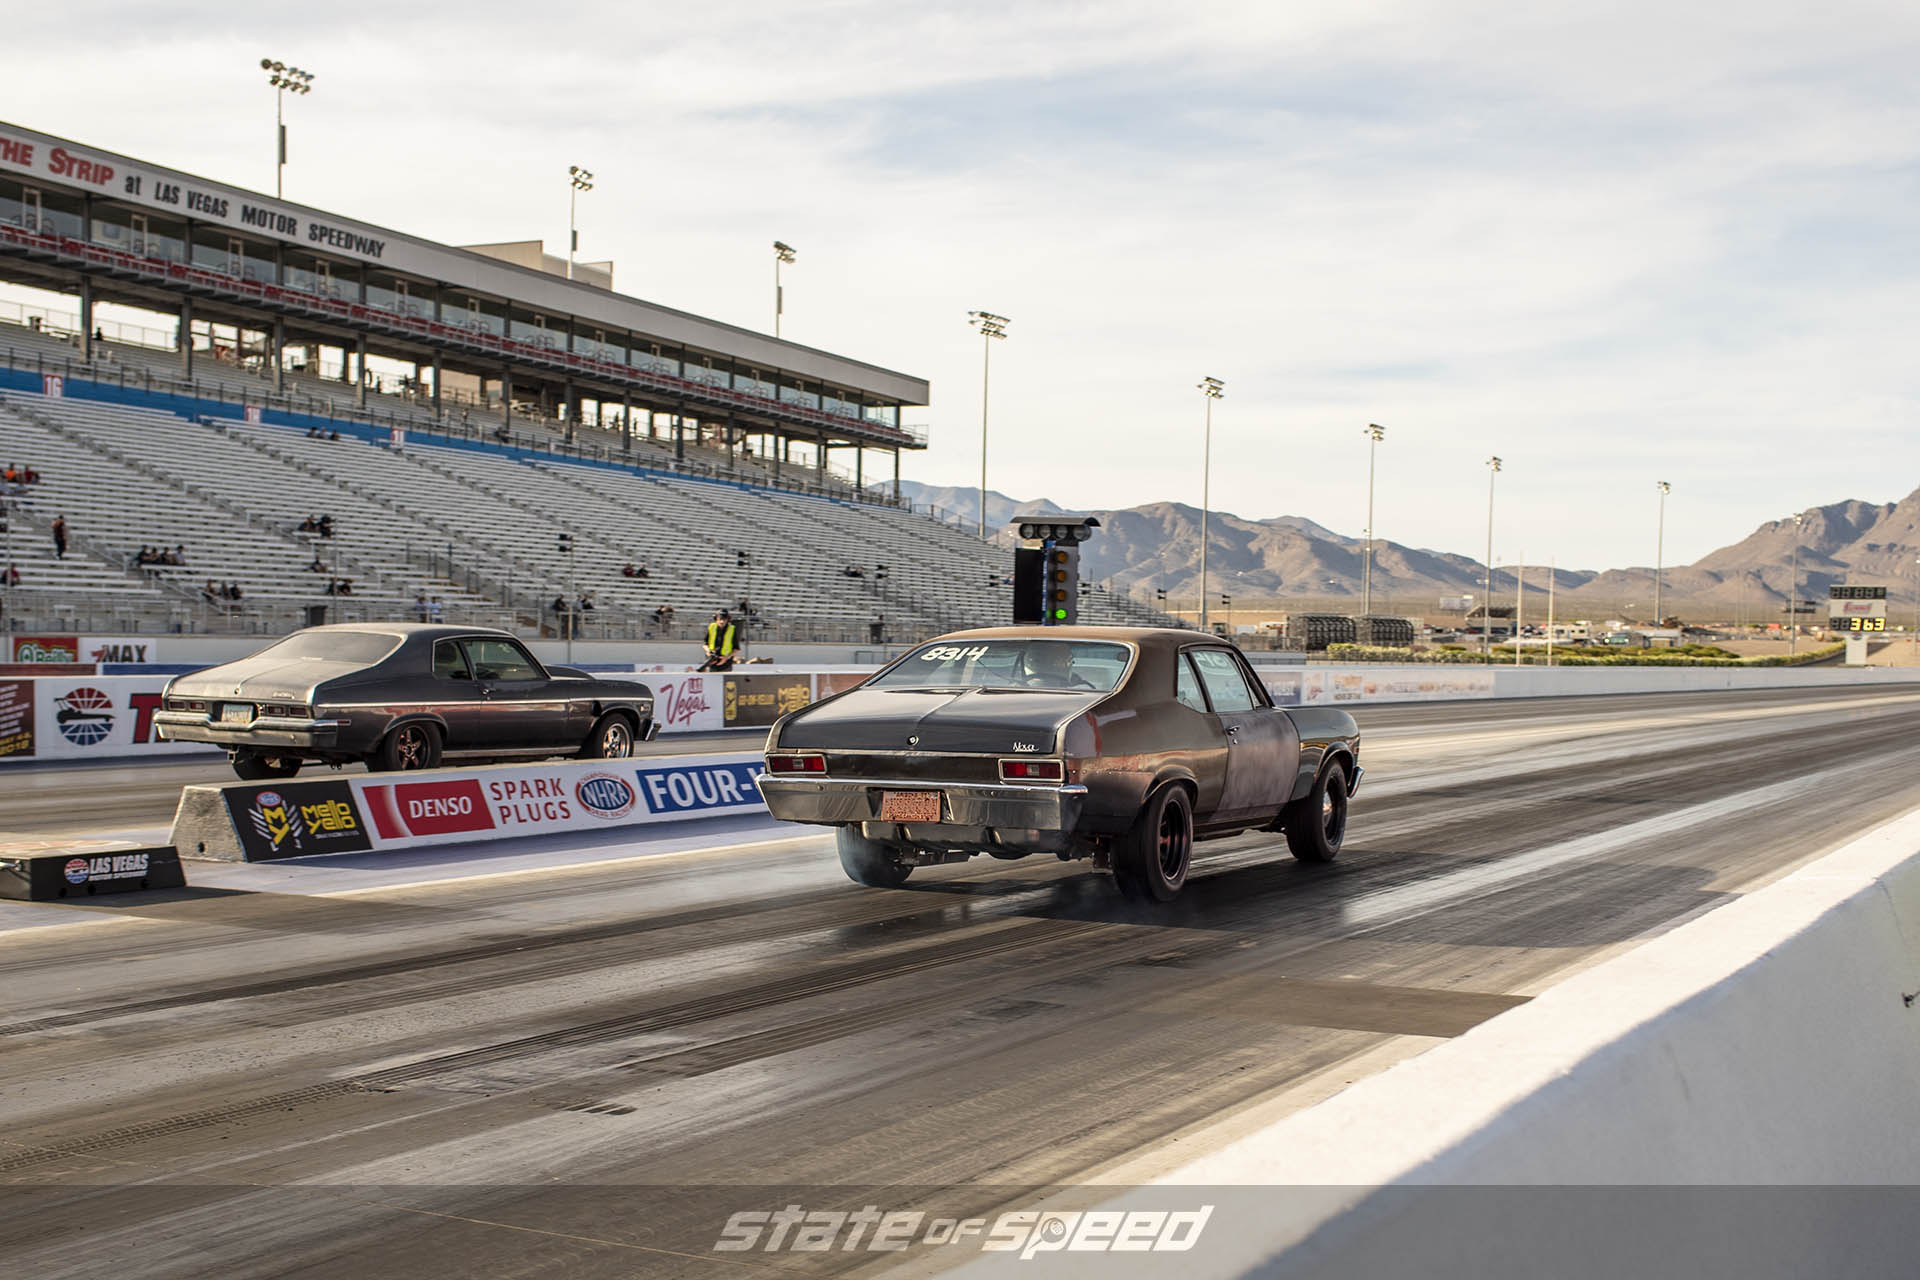 Muscle cars on the drag strip